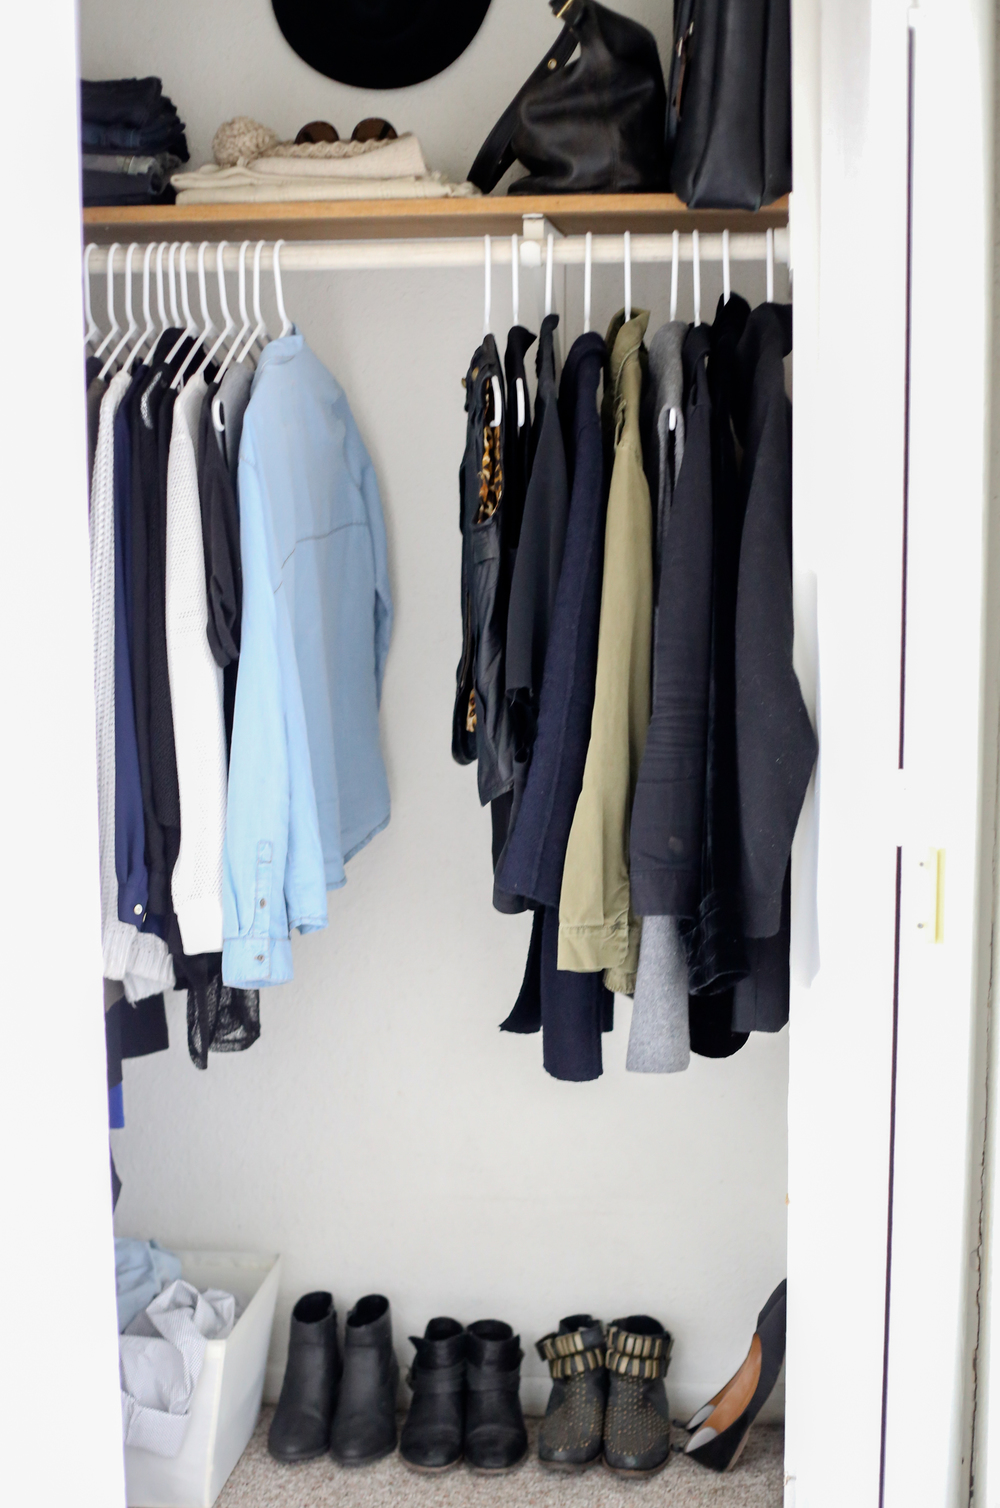 *For transparency's sake, here is my actual closet with my entire wardrobe excluding my personals and my hiking clothes which always stay in the car.